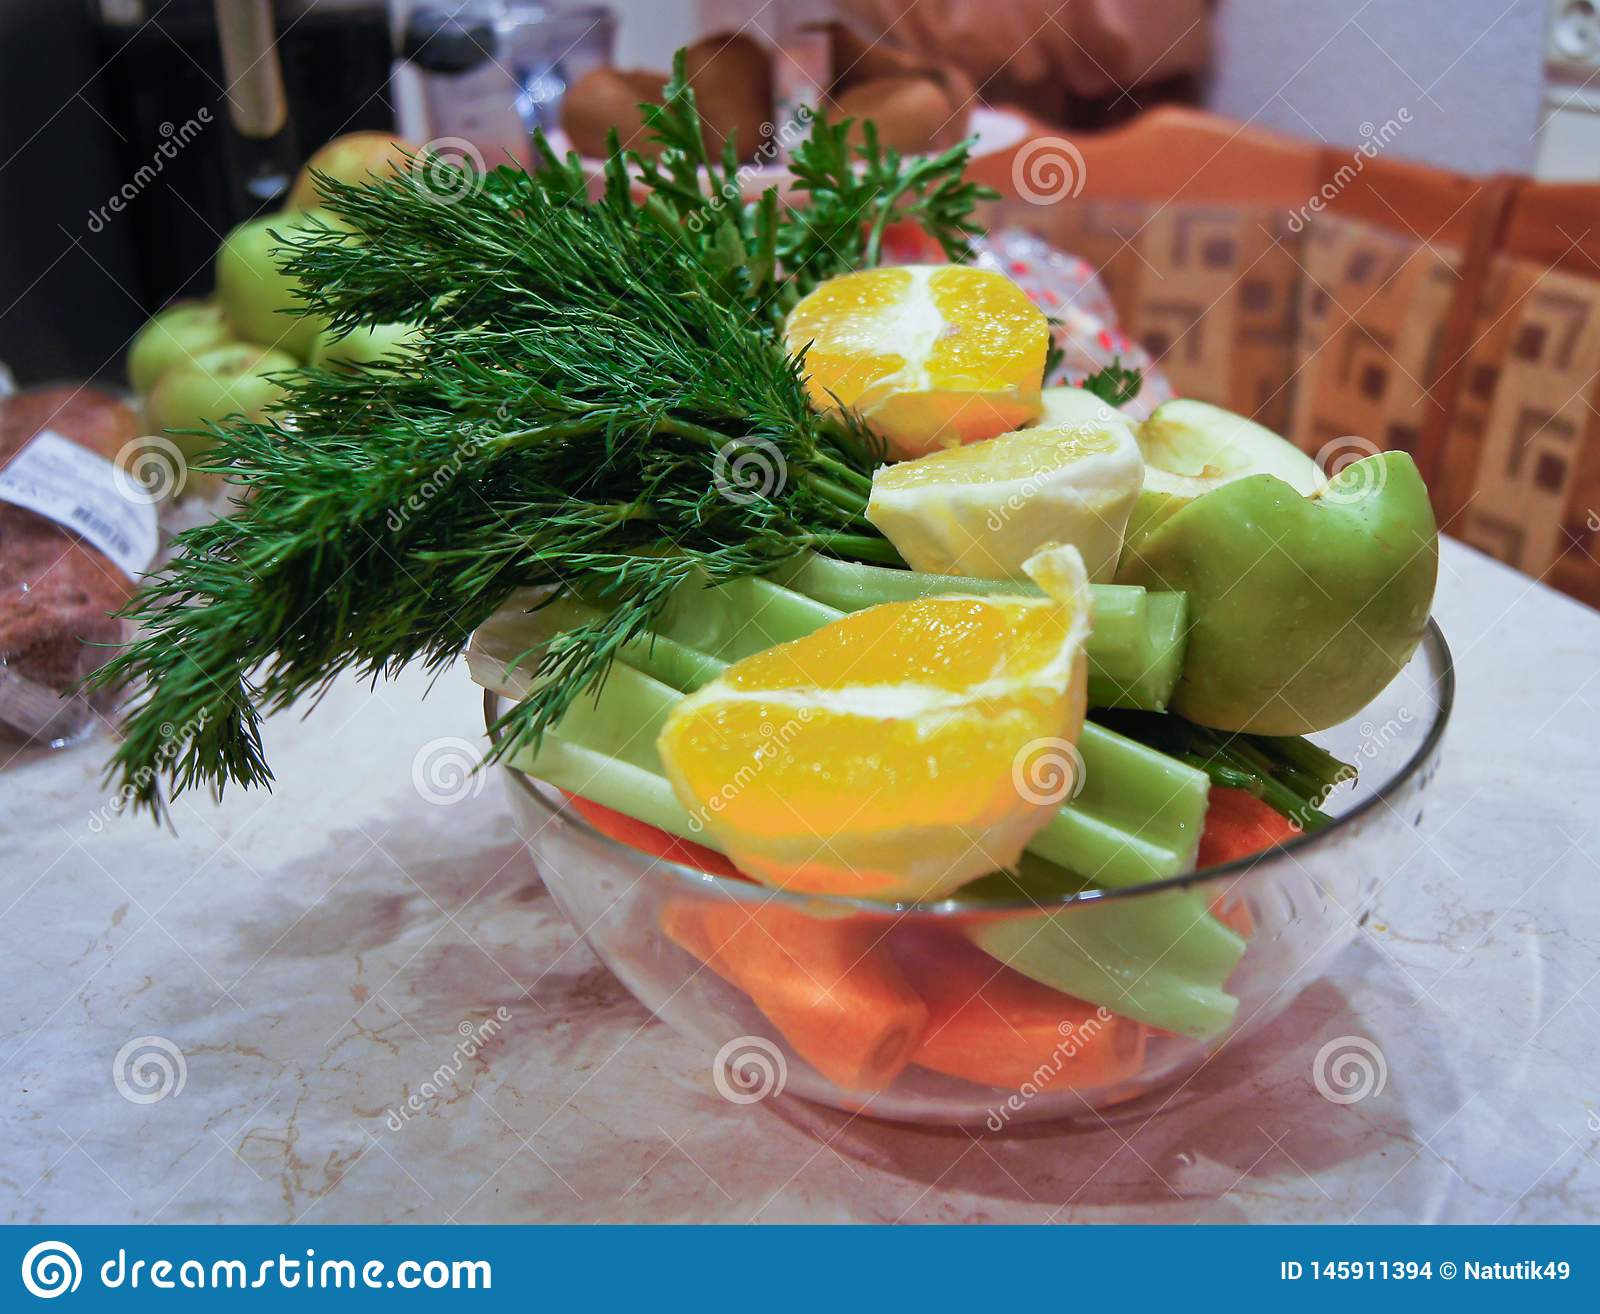 Ingredients for diet salad, apples and celery and fresh carrots